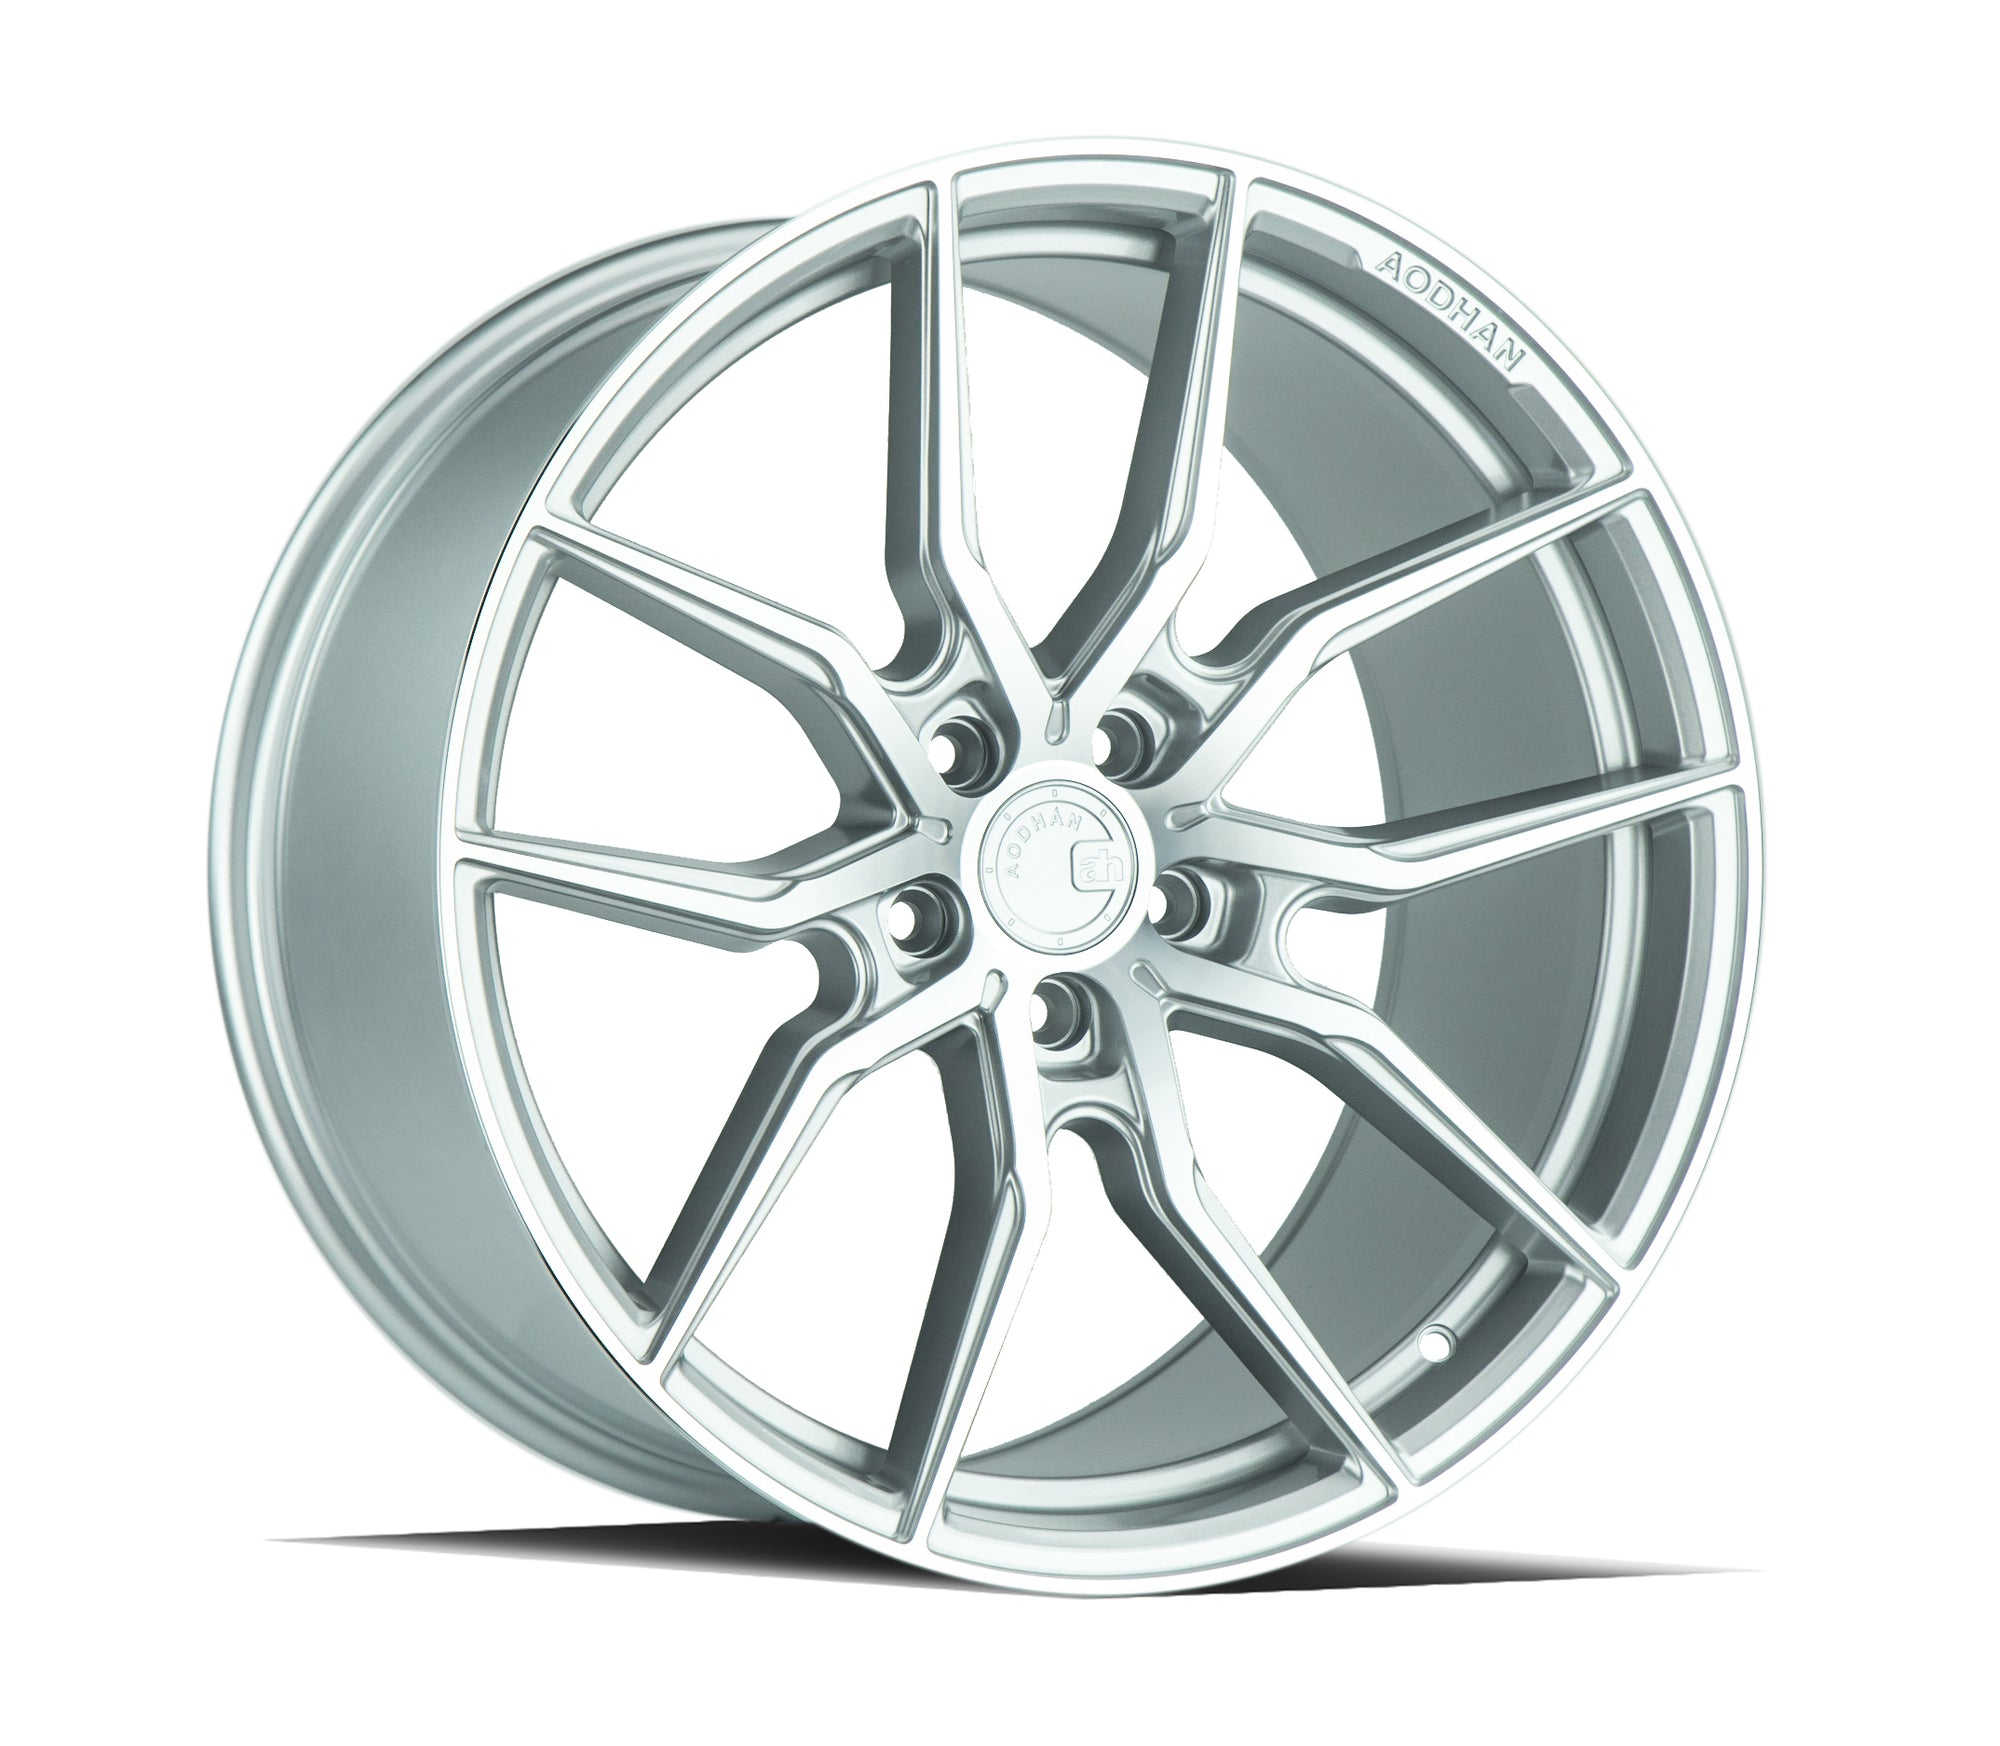 Aodhan AFF1 20x10.5 5x120 +35 Gloss Silver Machined Face